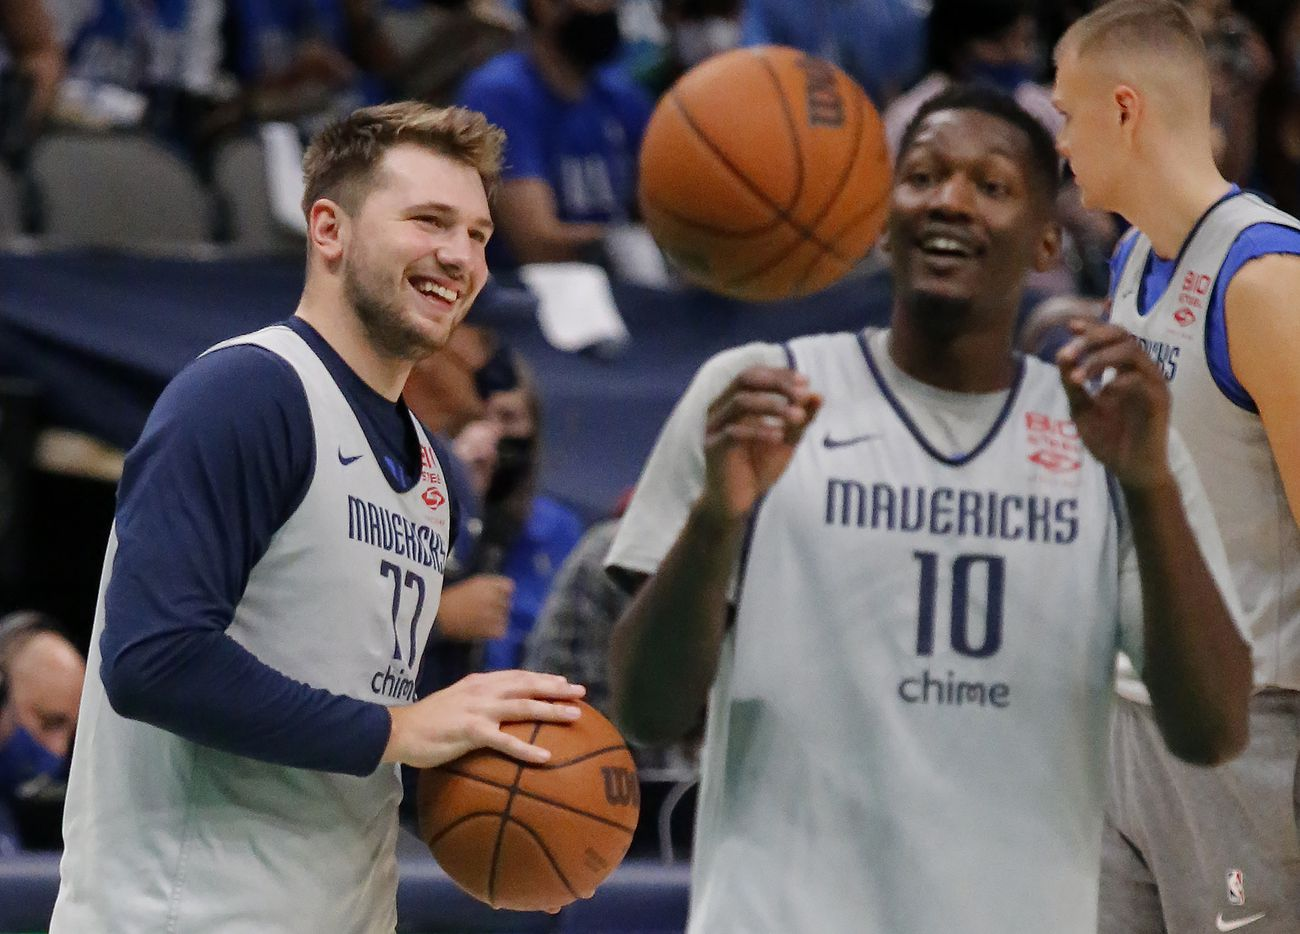 Dallas Mavericks guard Luka Doncic (77) shares a laugh with Dallas Mavericks forward Dorian Finney-Smith (10) during warm ups as the Dallas Mavericks held their Mavs Fam Jam, a scrimmage free to the public at the American Airlines Center in Dallas on Sunday, October 3, 2021. (Stewart F. House/Special Contributor)